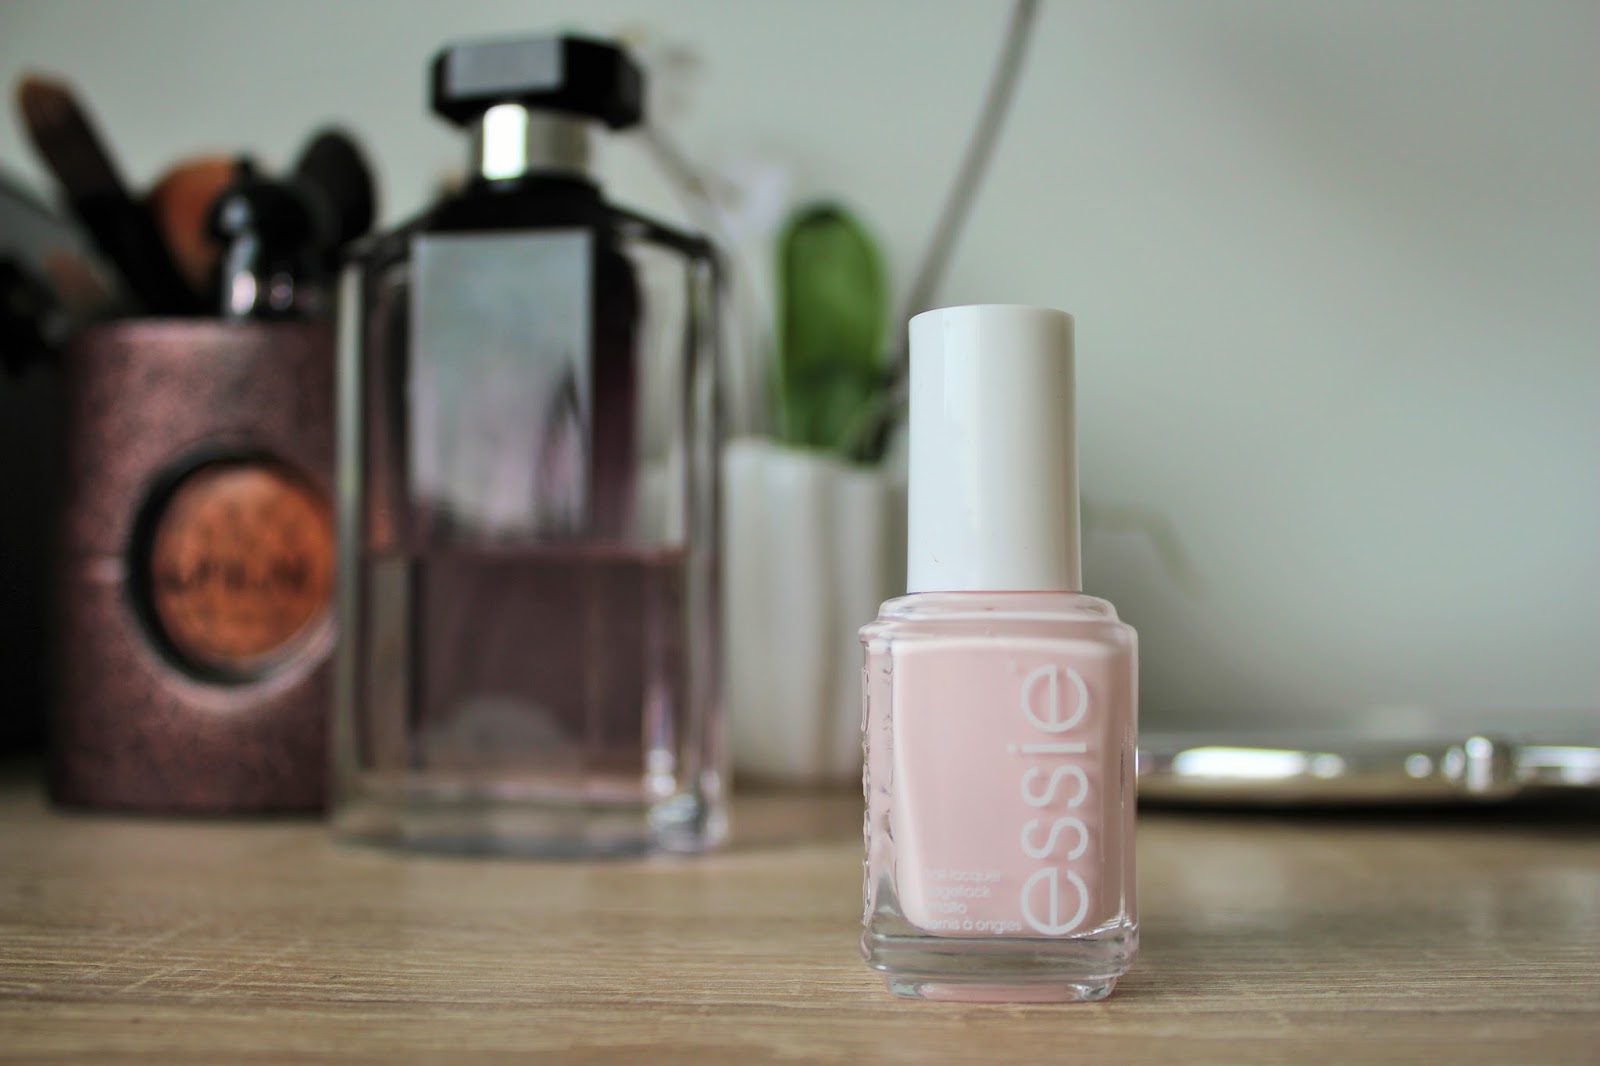 Essie Nail Polish in Peak Show - Winter 2015/2016 Collection